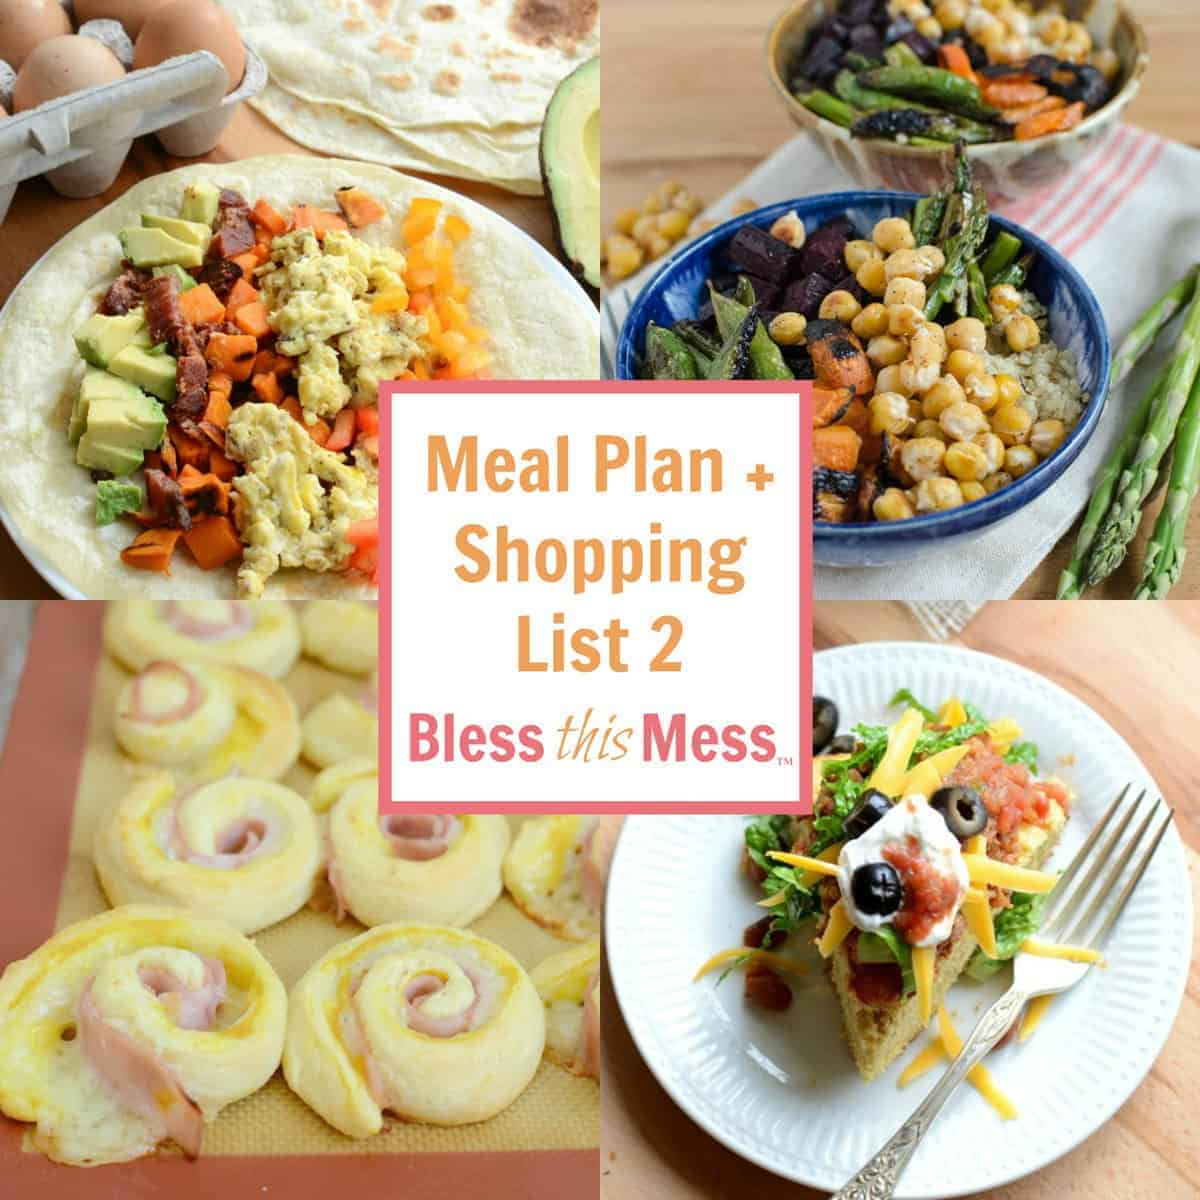 Meal Ideas For Family Easy: Easy Family Meal Plan 2 With Shopping List